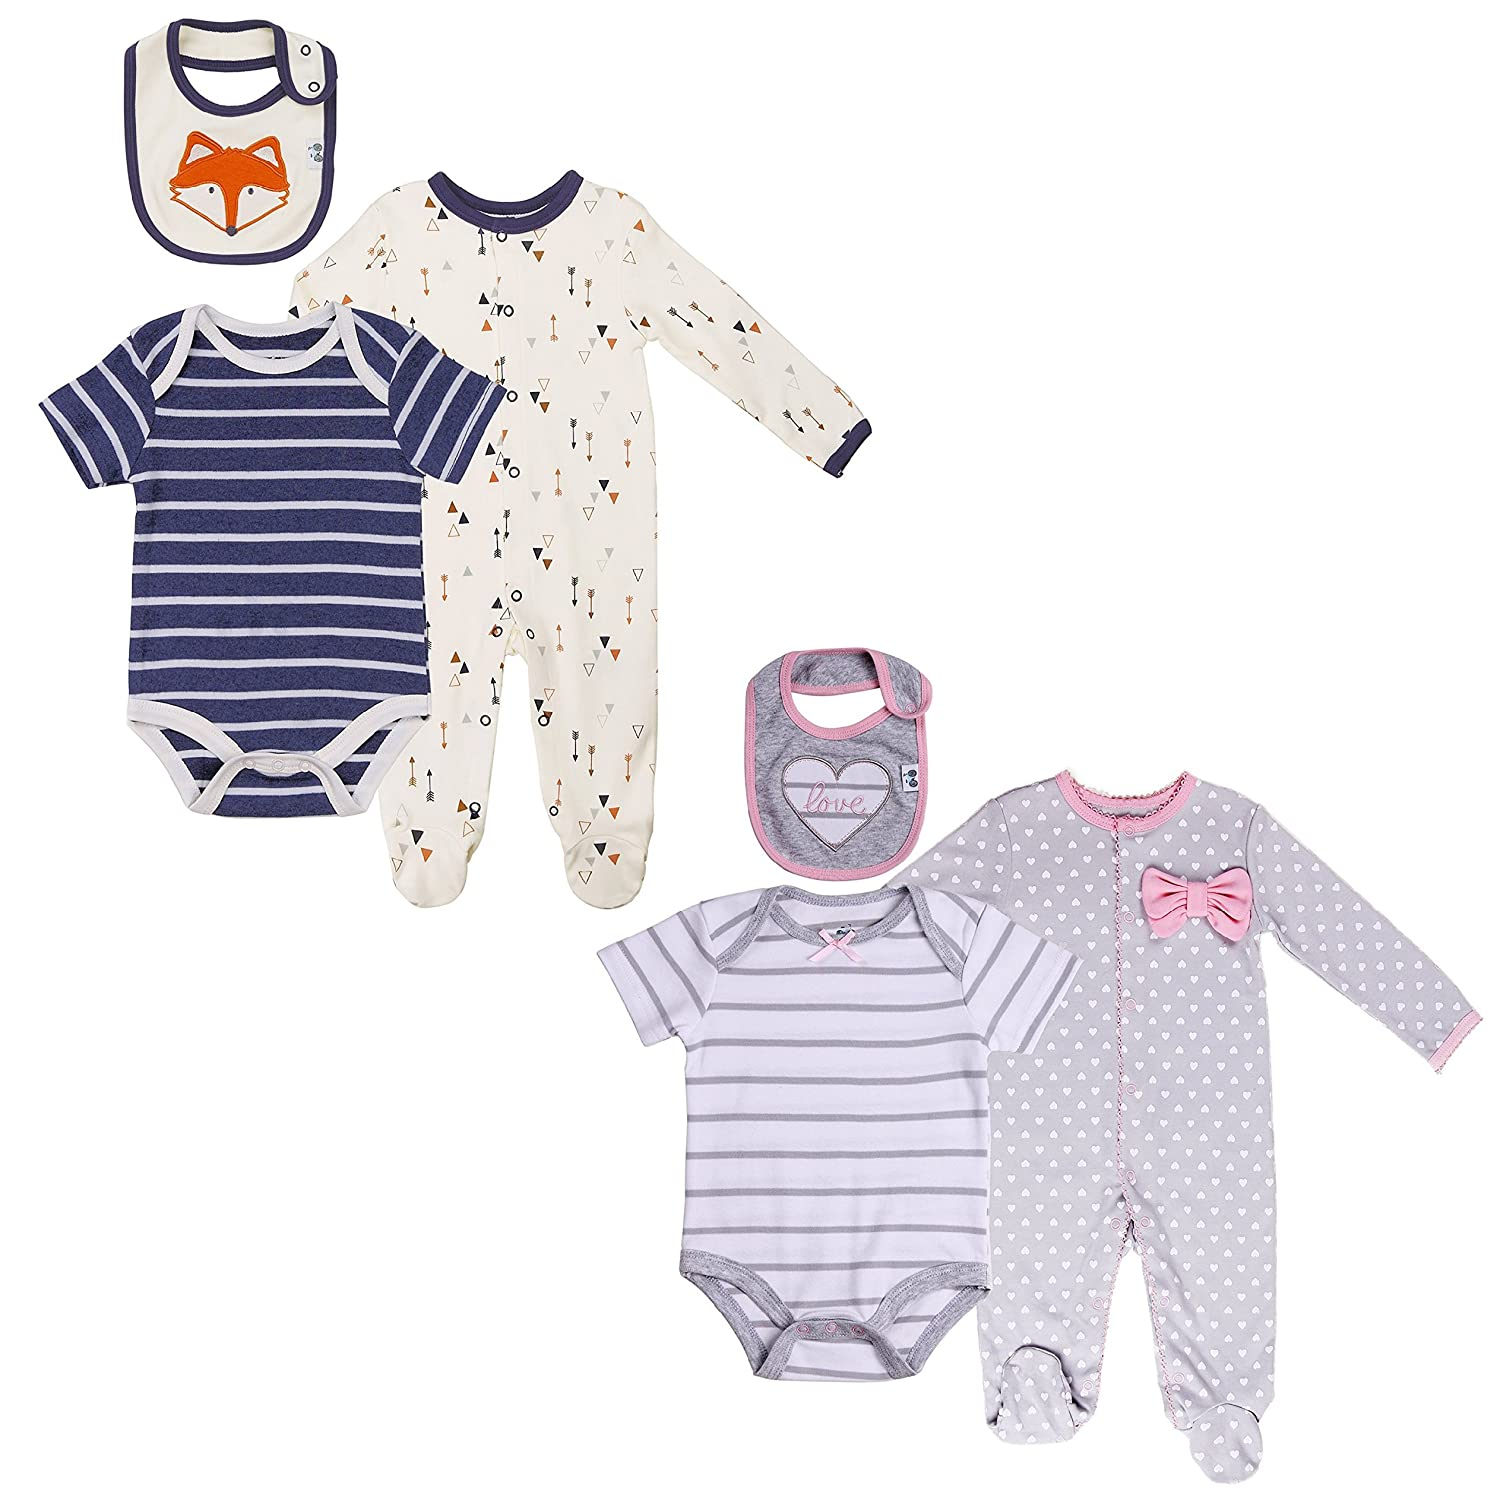 Asher and Olivia Baby Twin Boy-Girl Cozy Layette 6 Pcs Set A1723-A1739